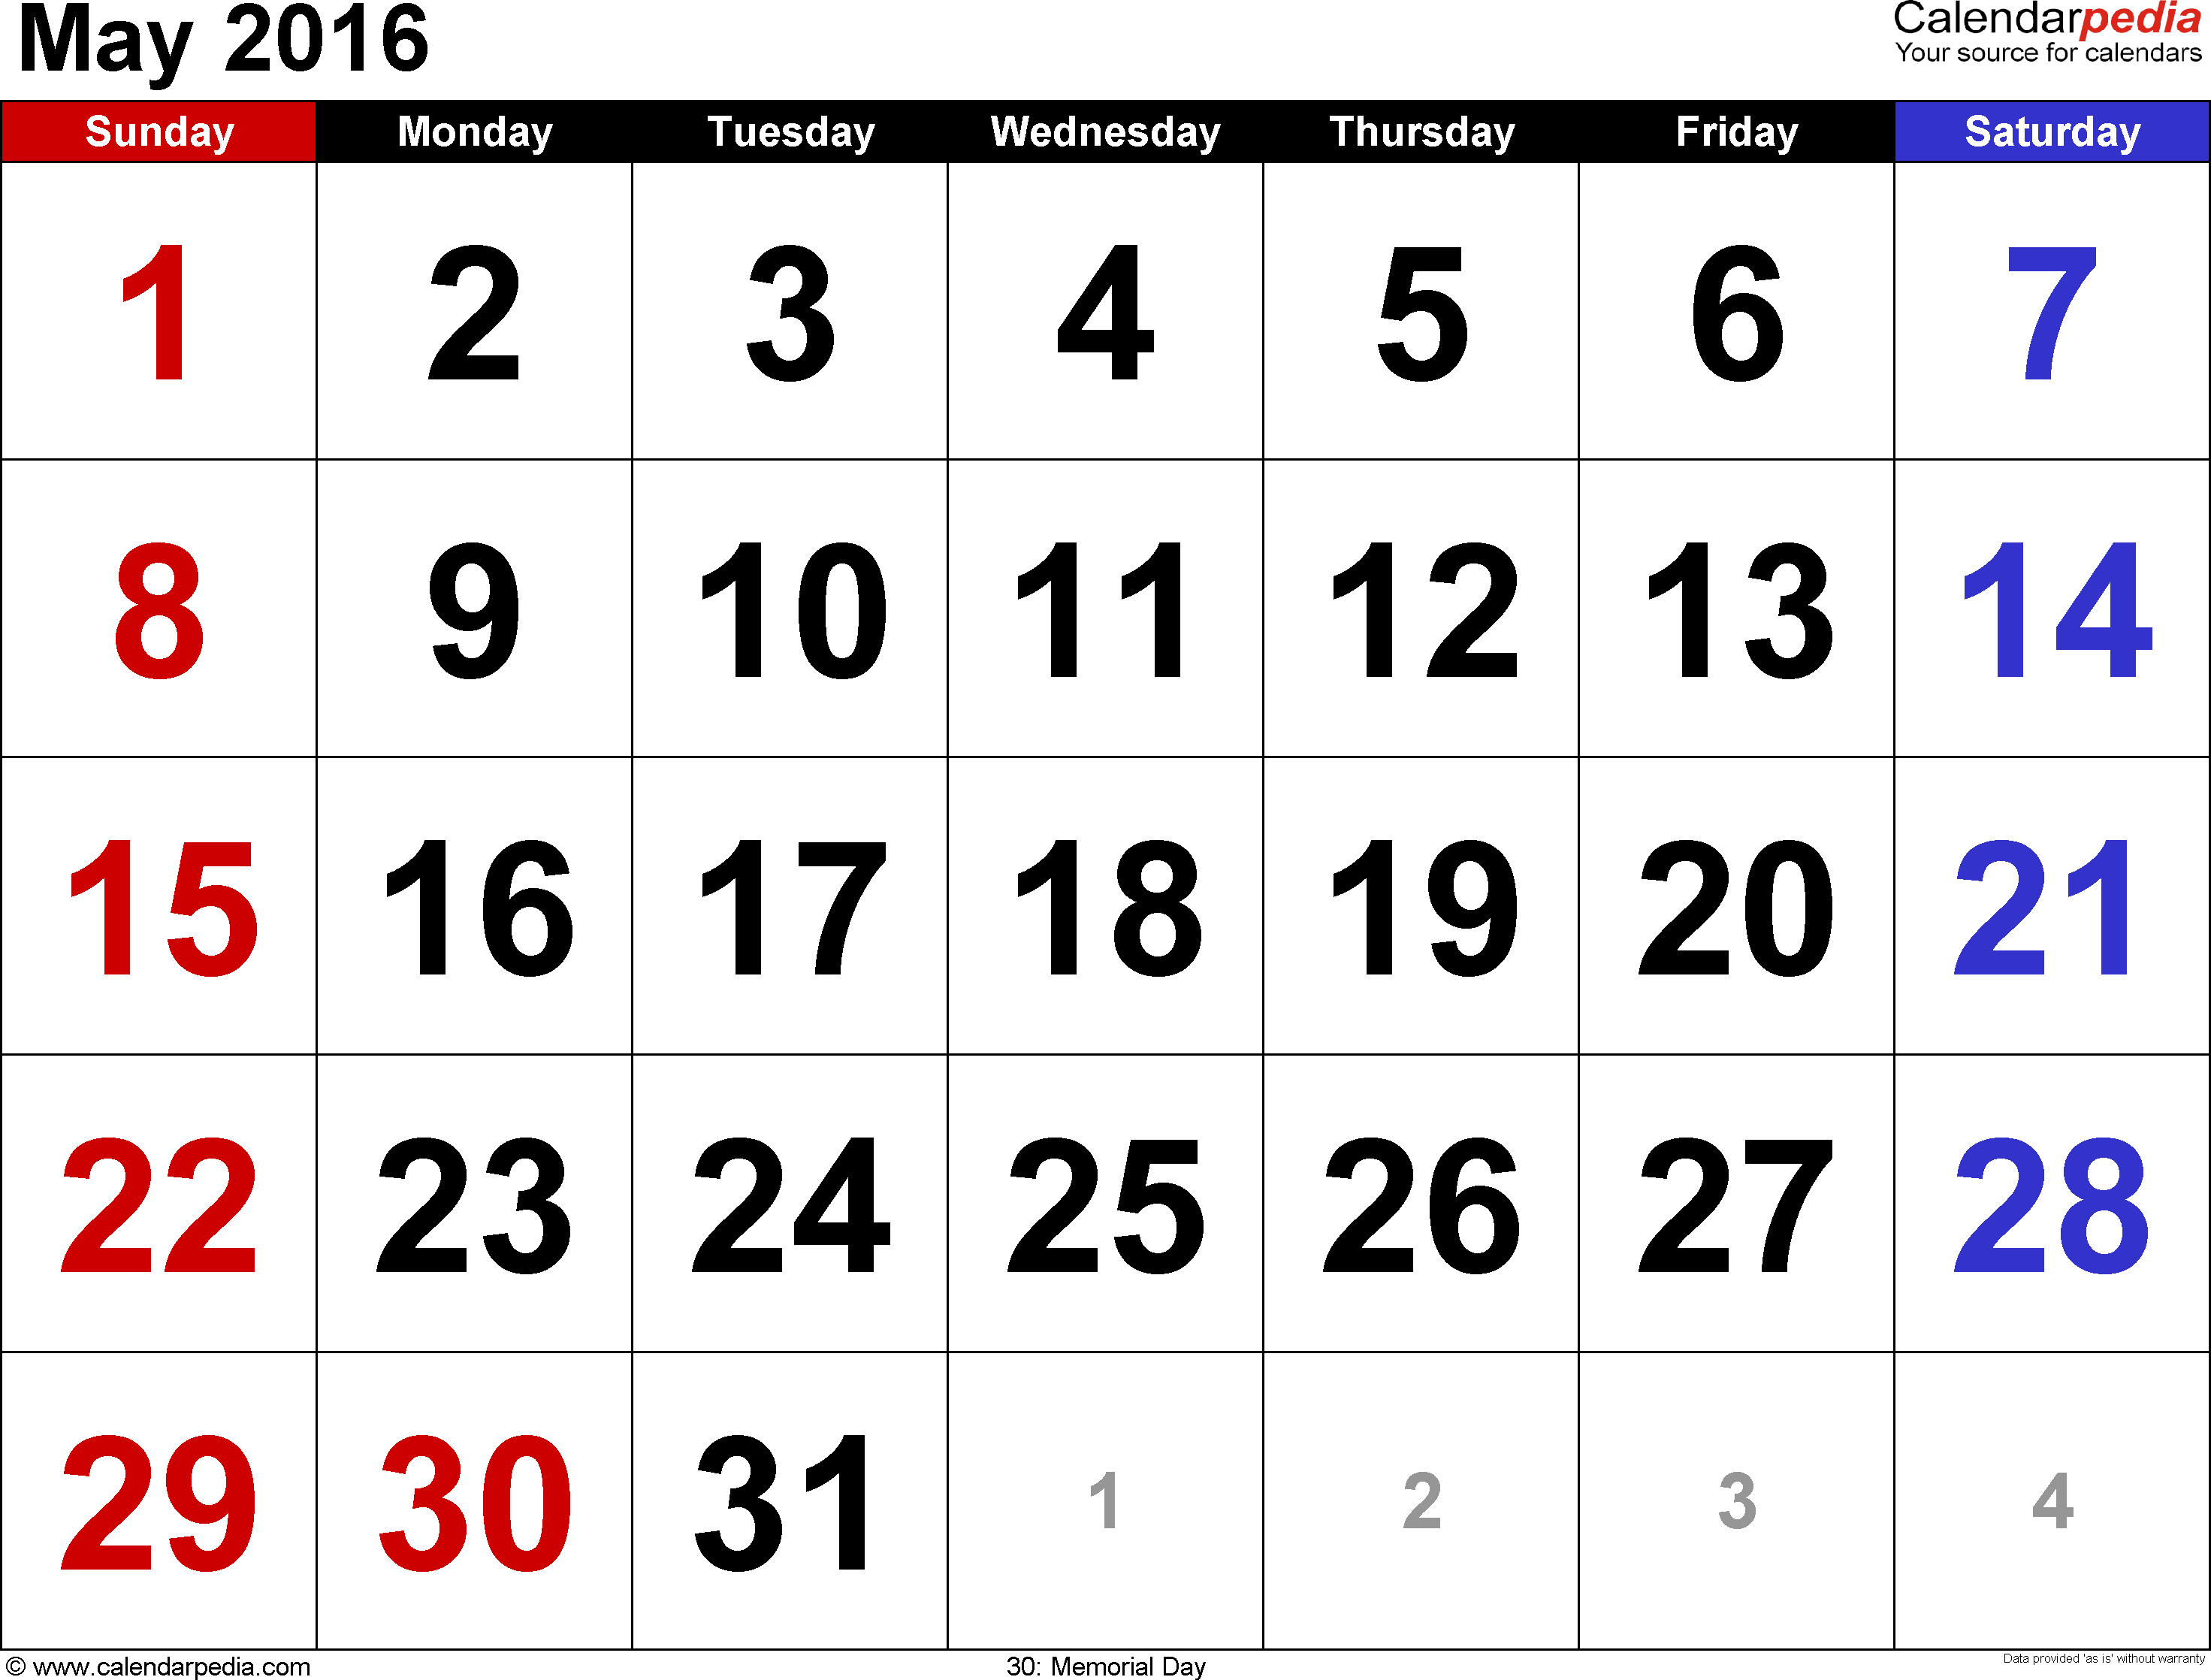 May 2016 calendar, landscape orientation, large numerals, available as printable templates for Word, Excel and PDF